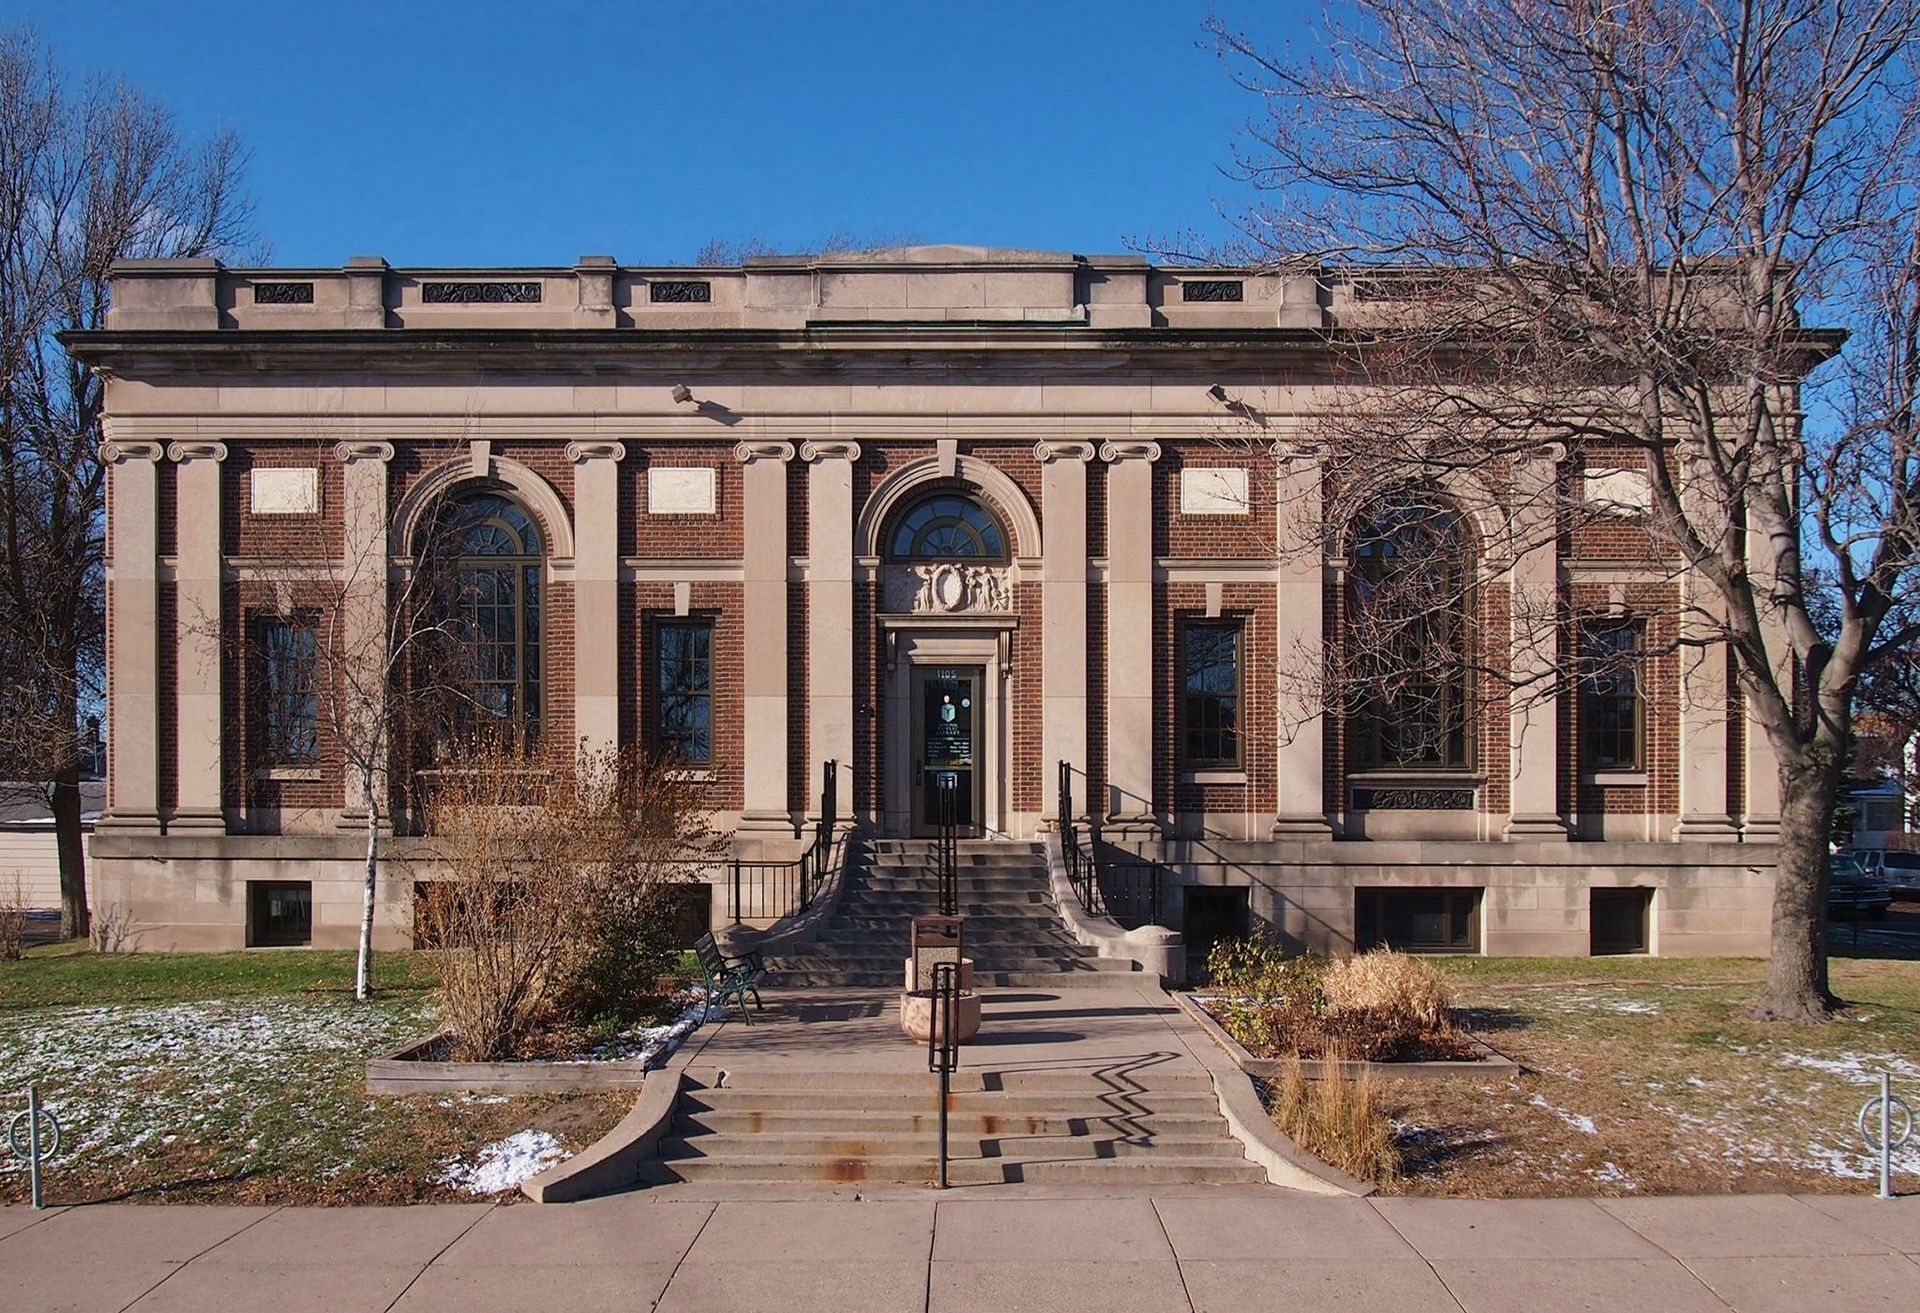 The former Arlington Hills Library, now the East Side Freedom Library, was built in 1917.